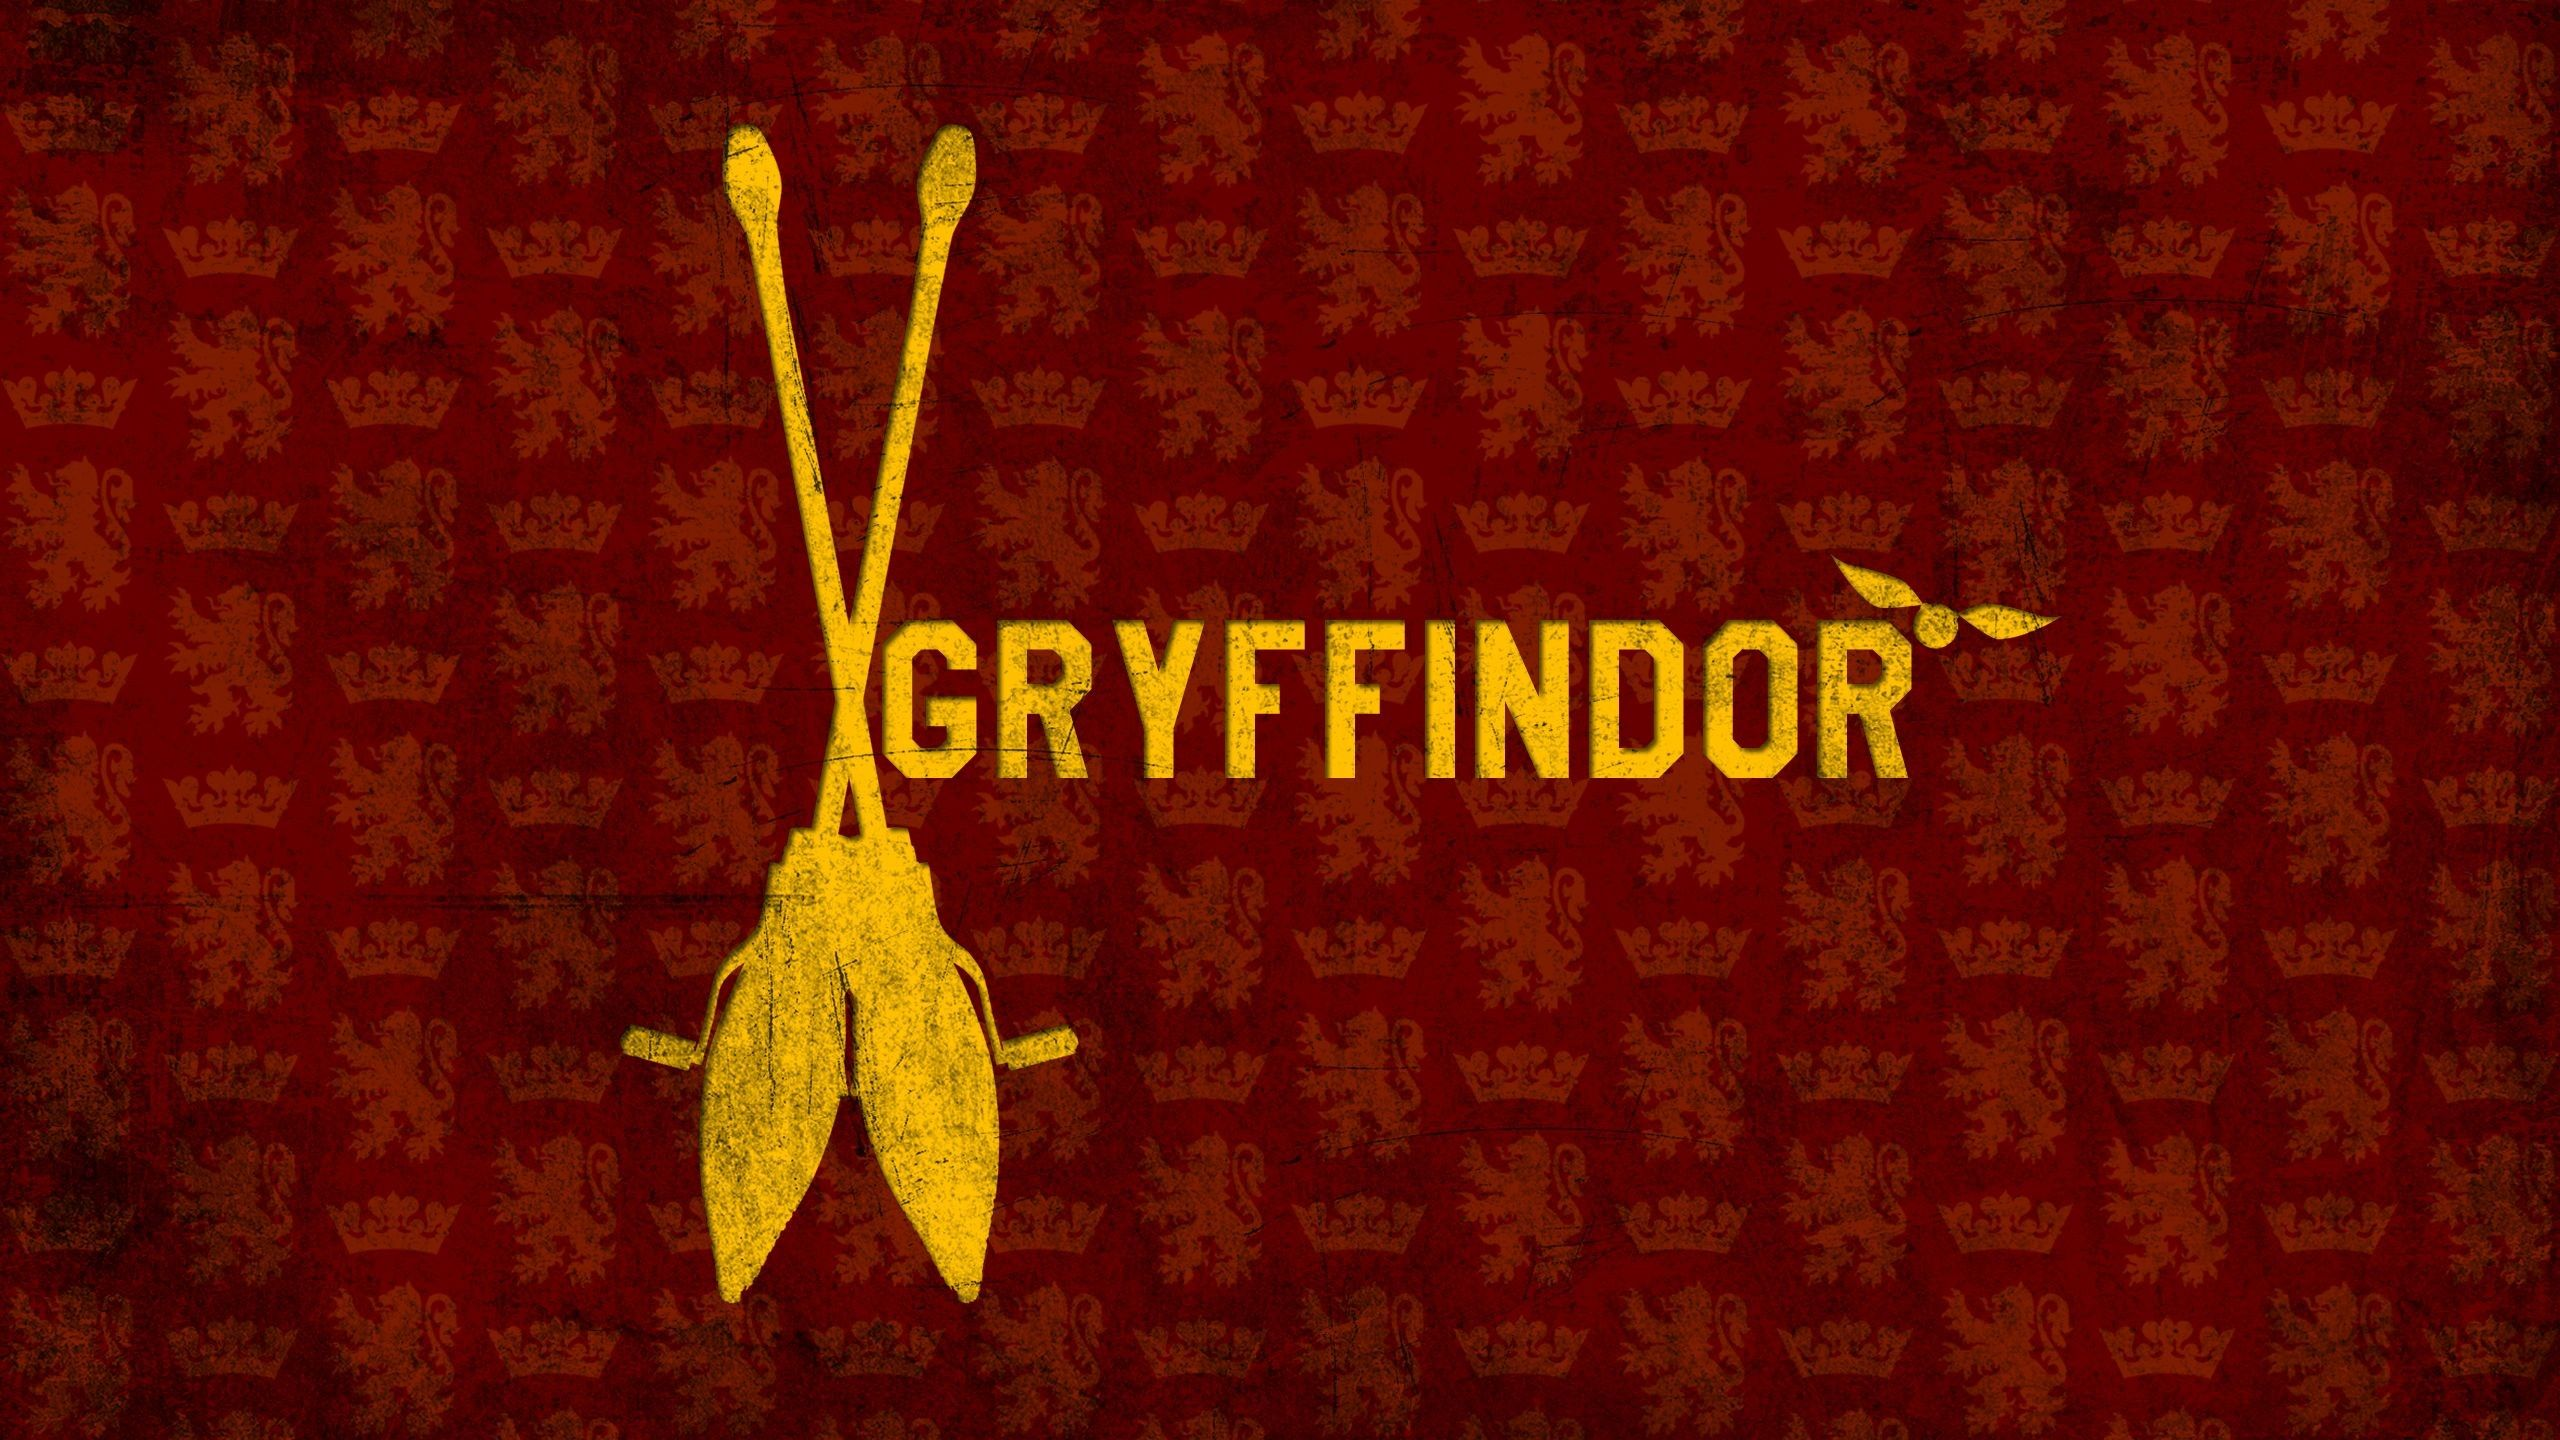 2560x1440 Harry Potter wallpaper ·① Download free amazing High Resolution ...